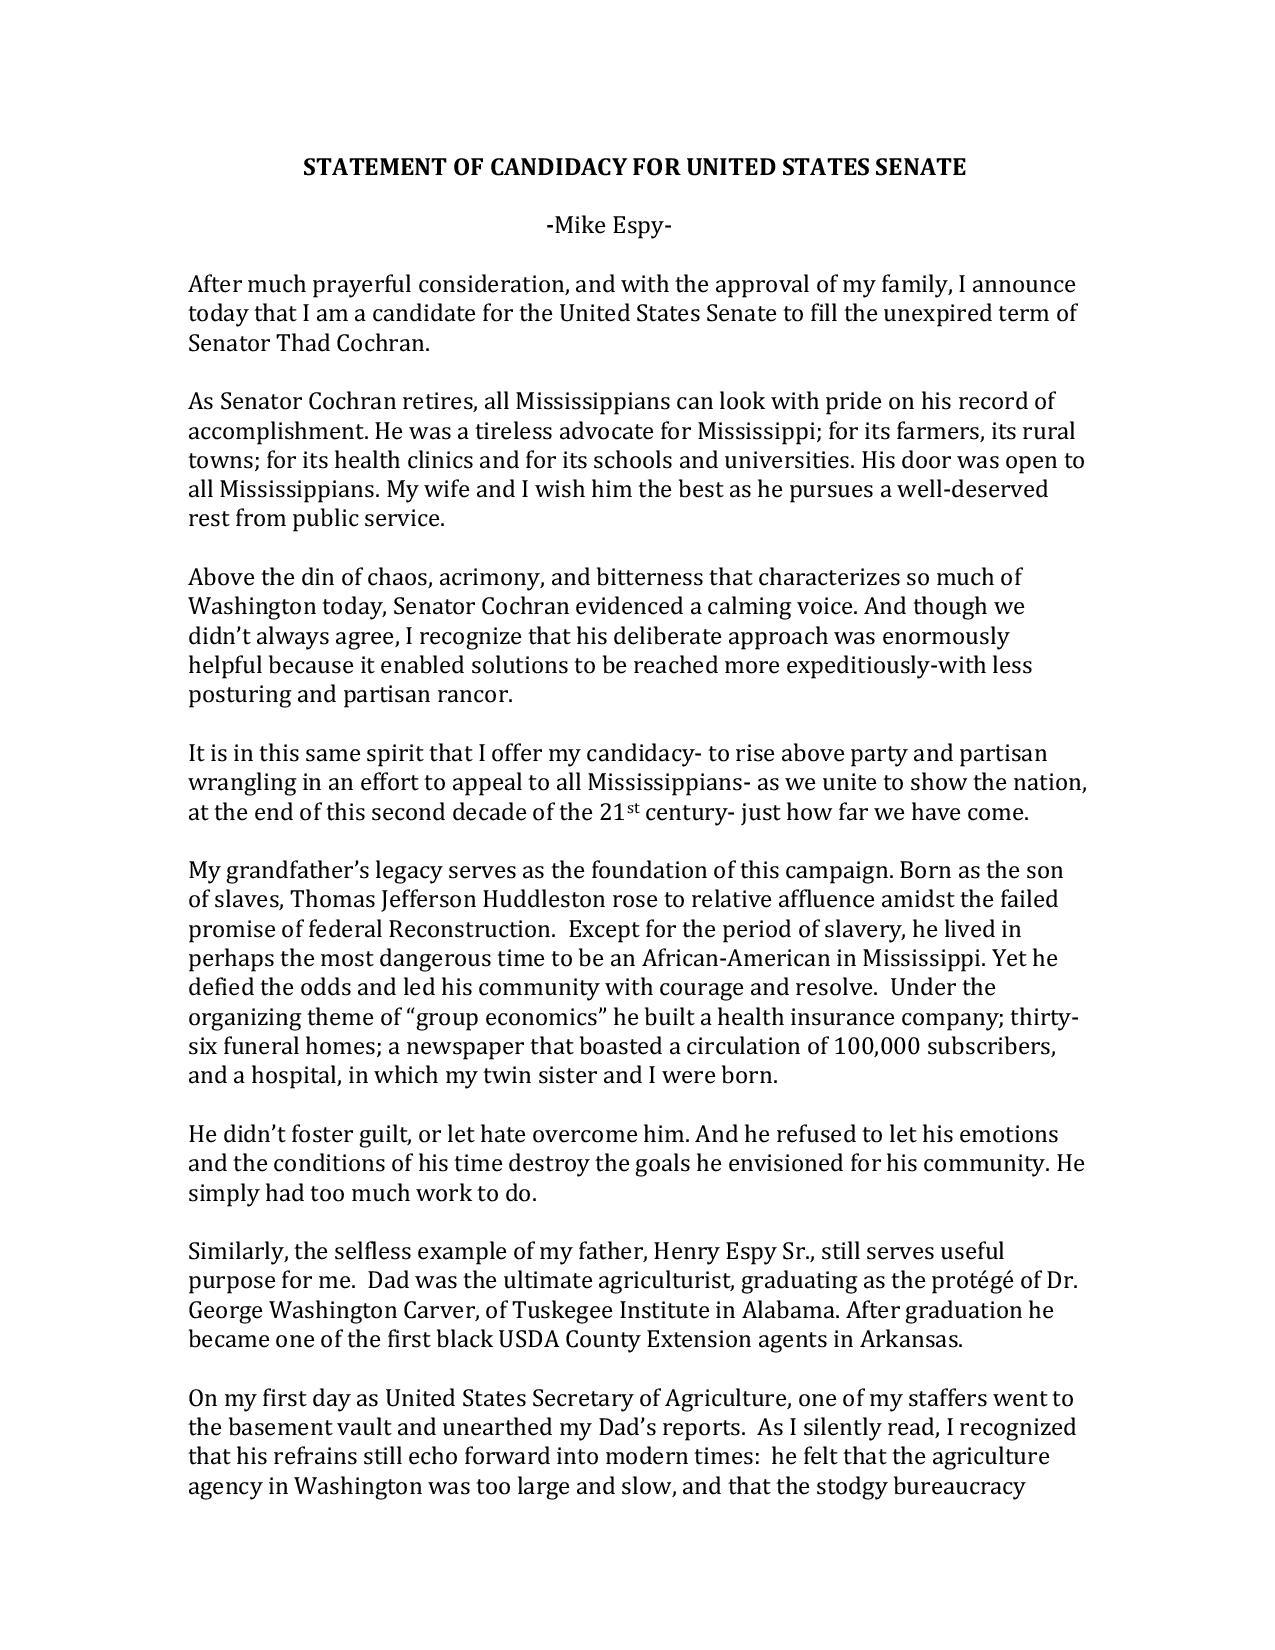 MIKE ESPY STATEMENT OF CANDIDACY FOR UNITED STATES SENATE -page-001